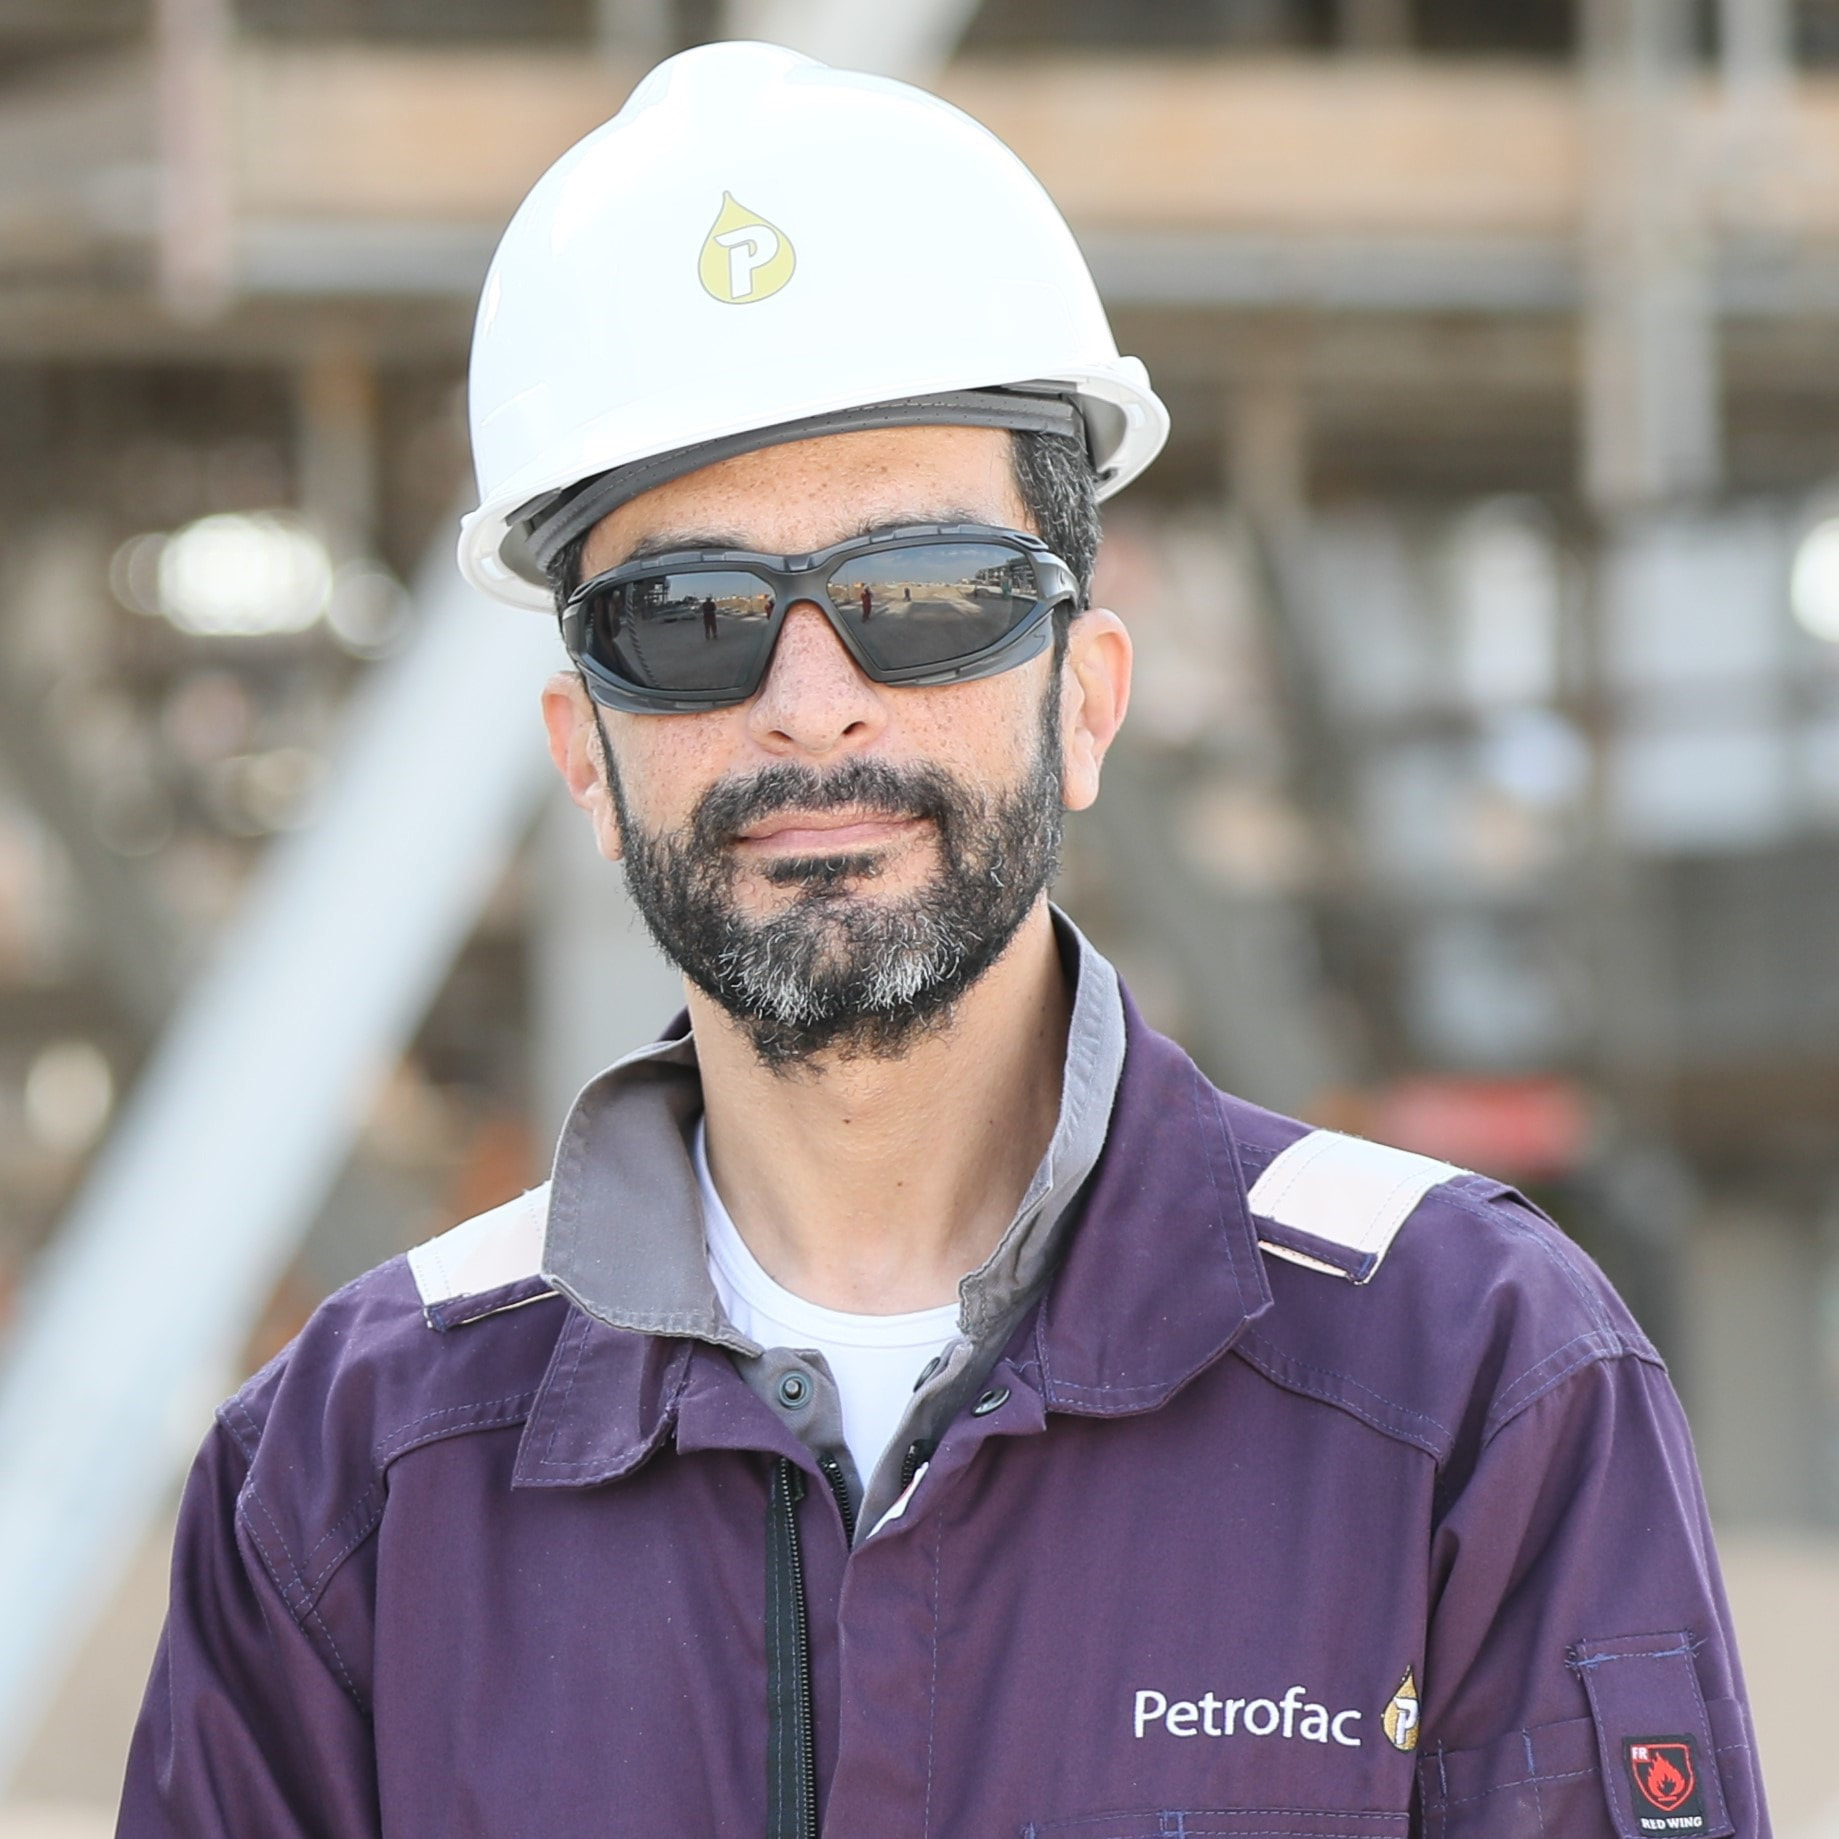 Personal protective equipment, Blue-collar worker, Hard hat, Glasses